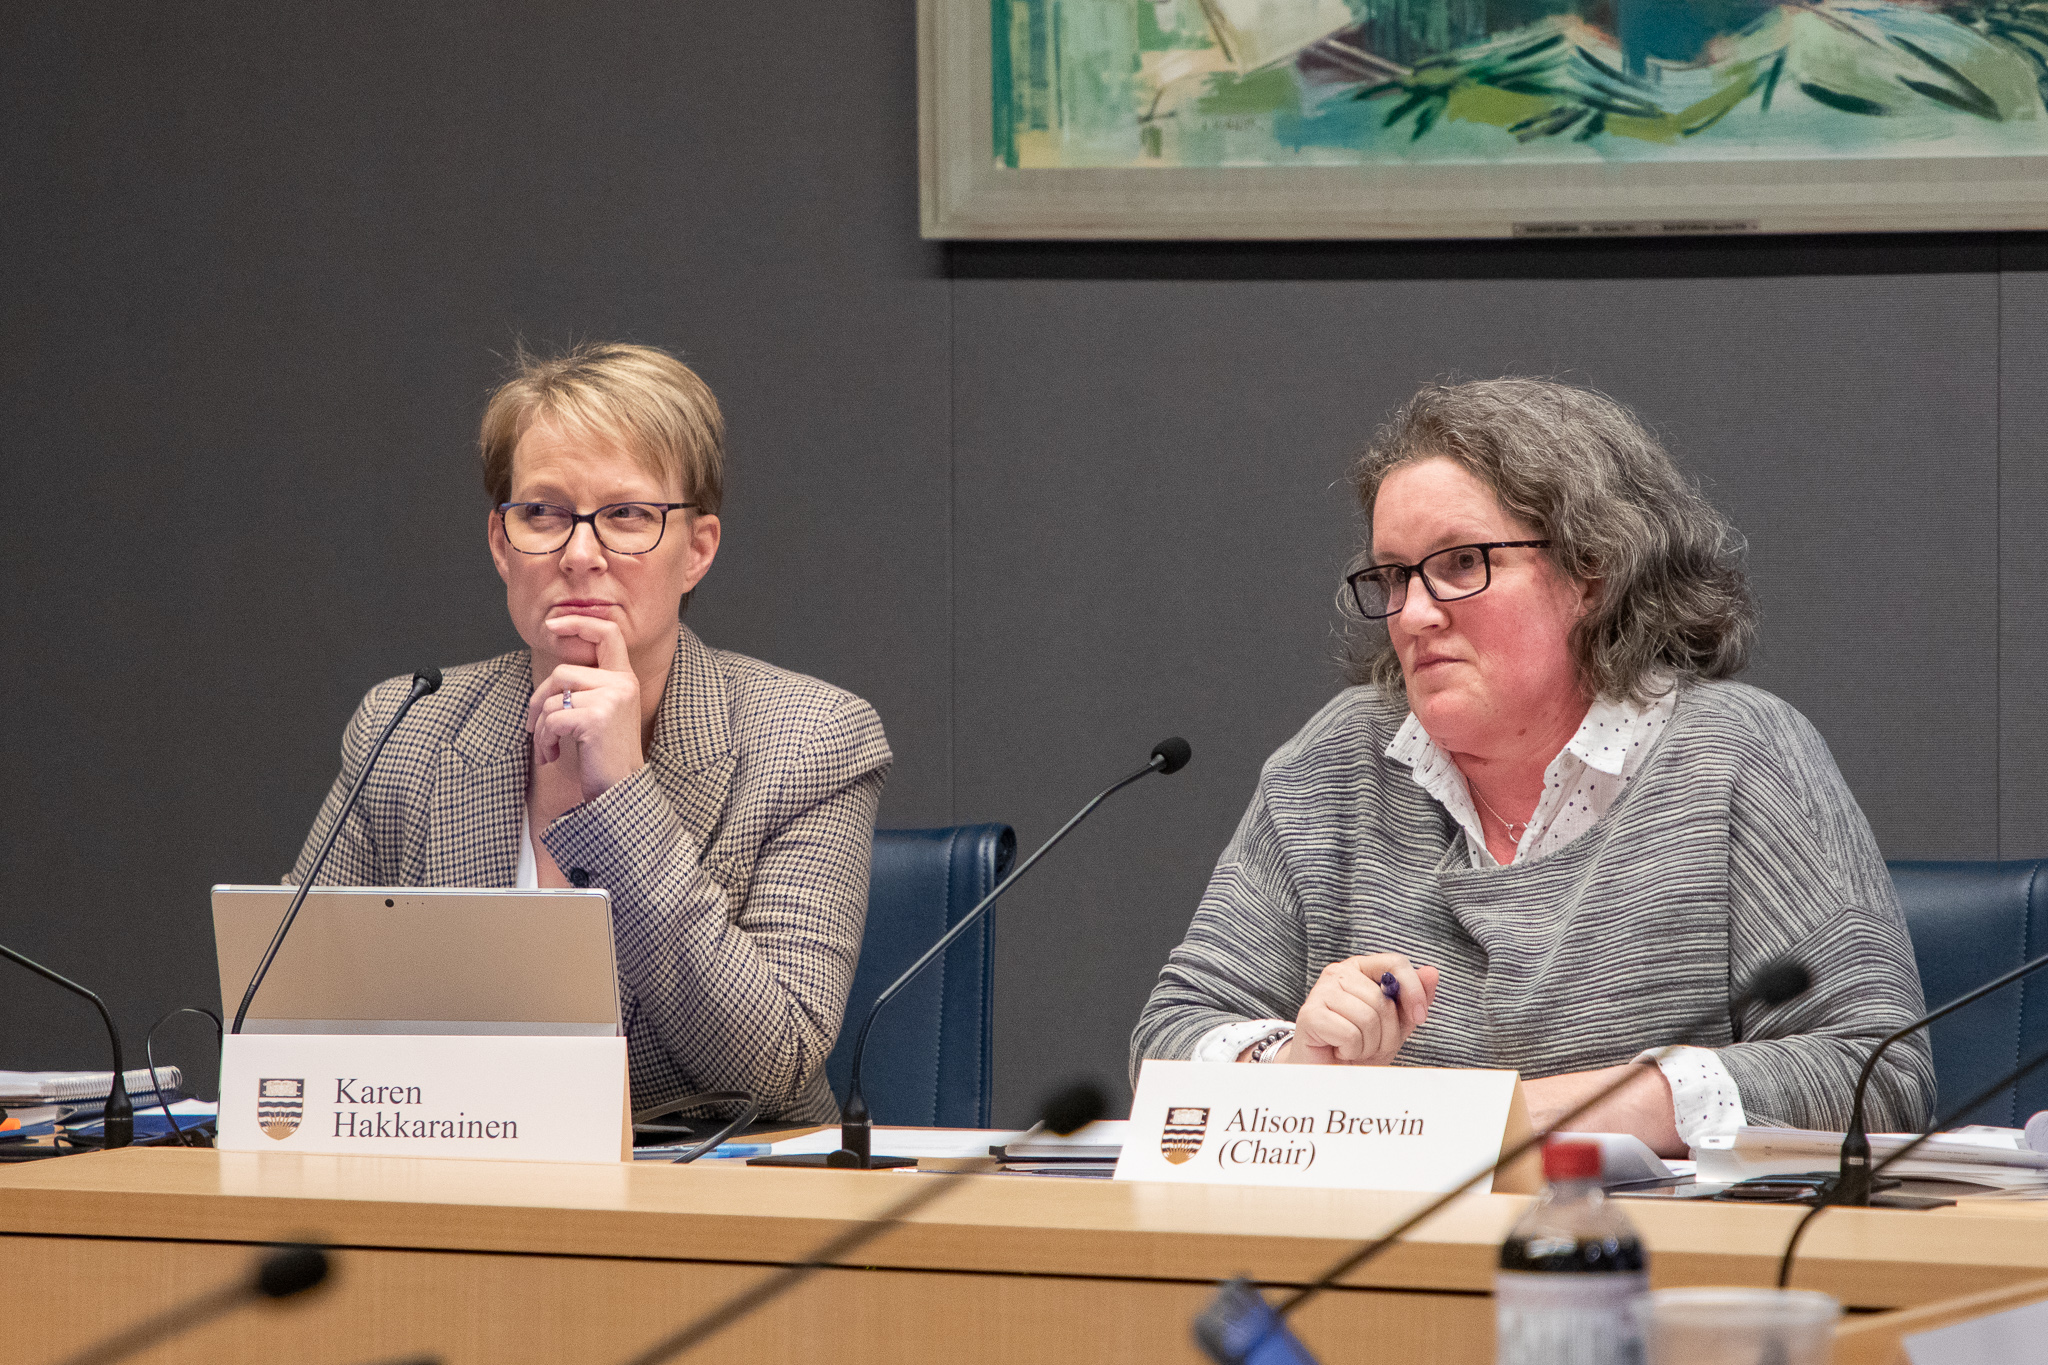 """We need to clear this up for our own confidence in democracy,"" said Governance Committee Chair Alison Brewin (right)."